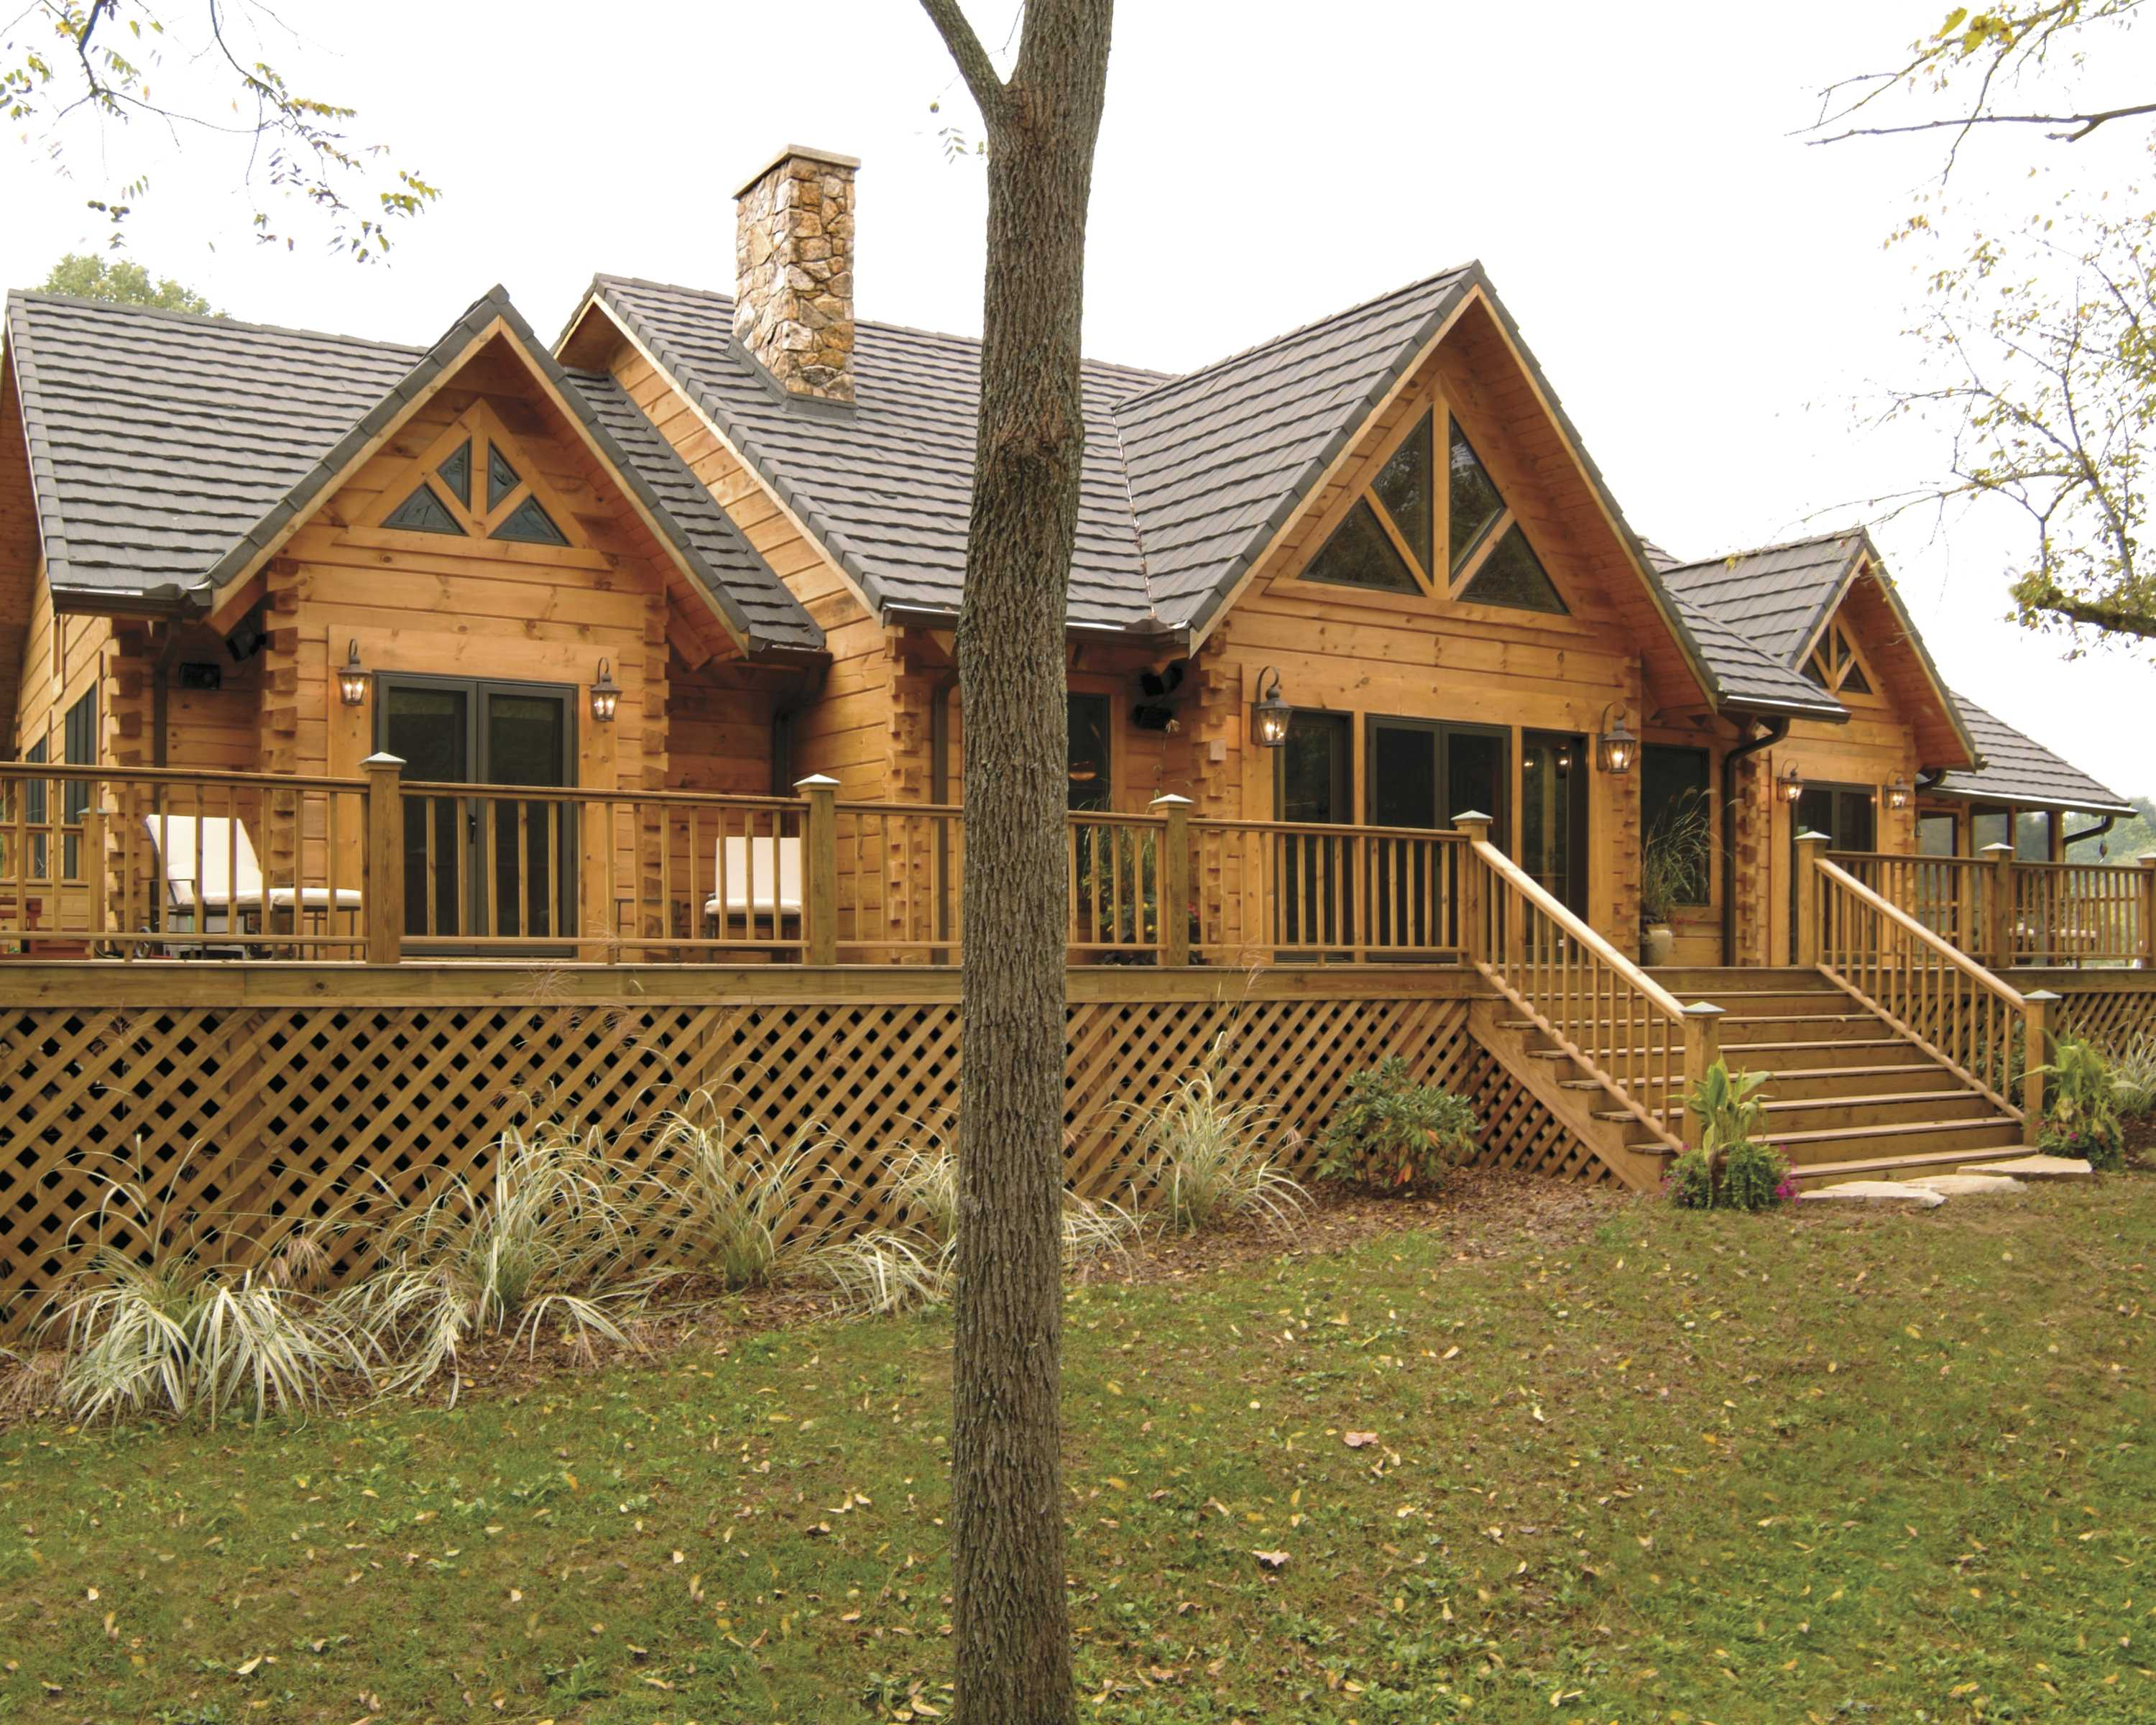 custom log home, log cabin home, log structures